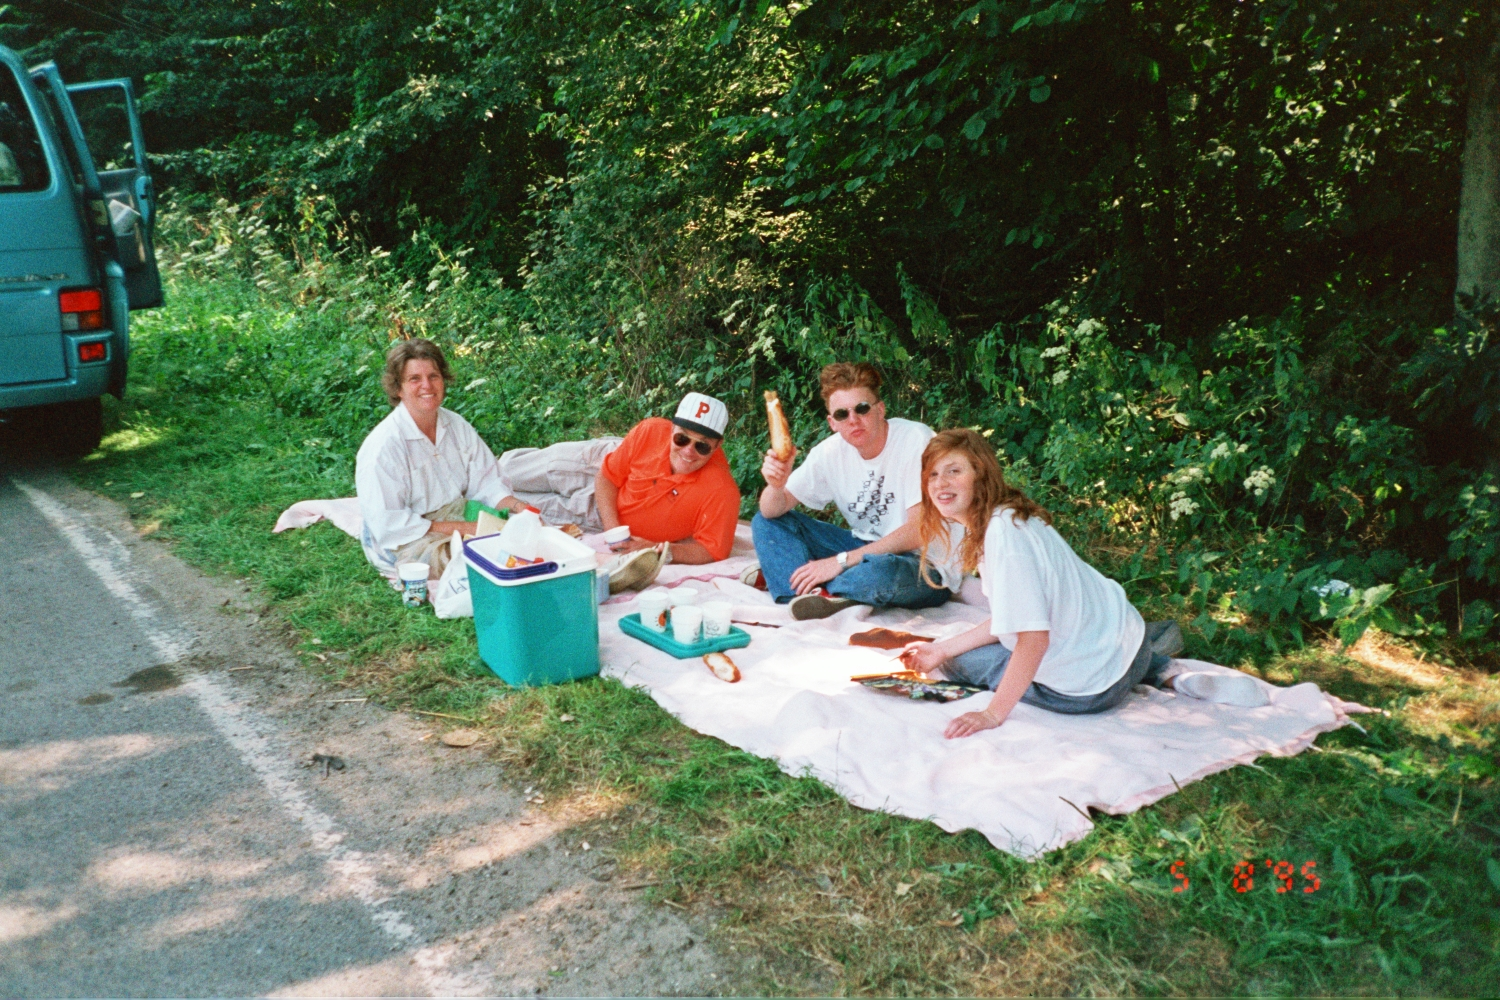 Shearer Picnic in Austria, next to the Blue VW Bus